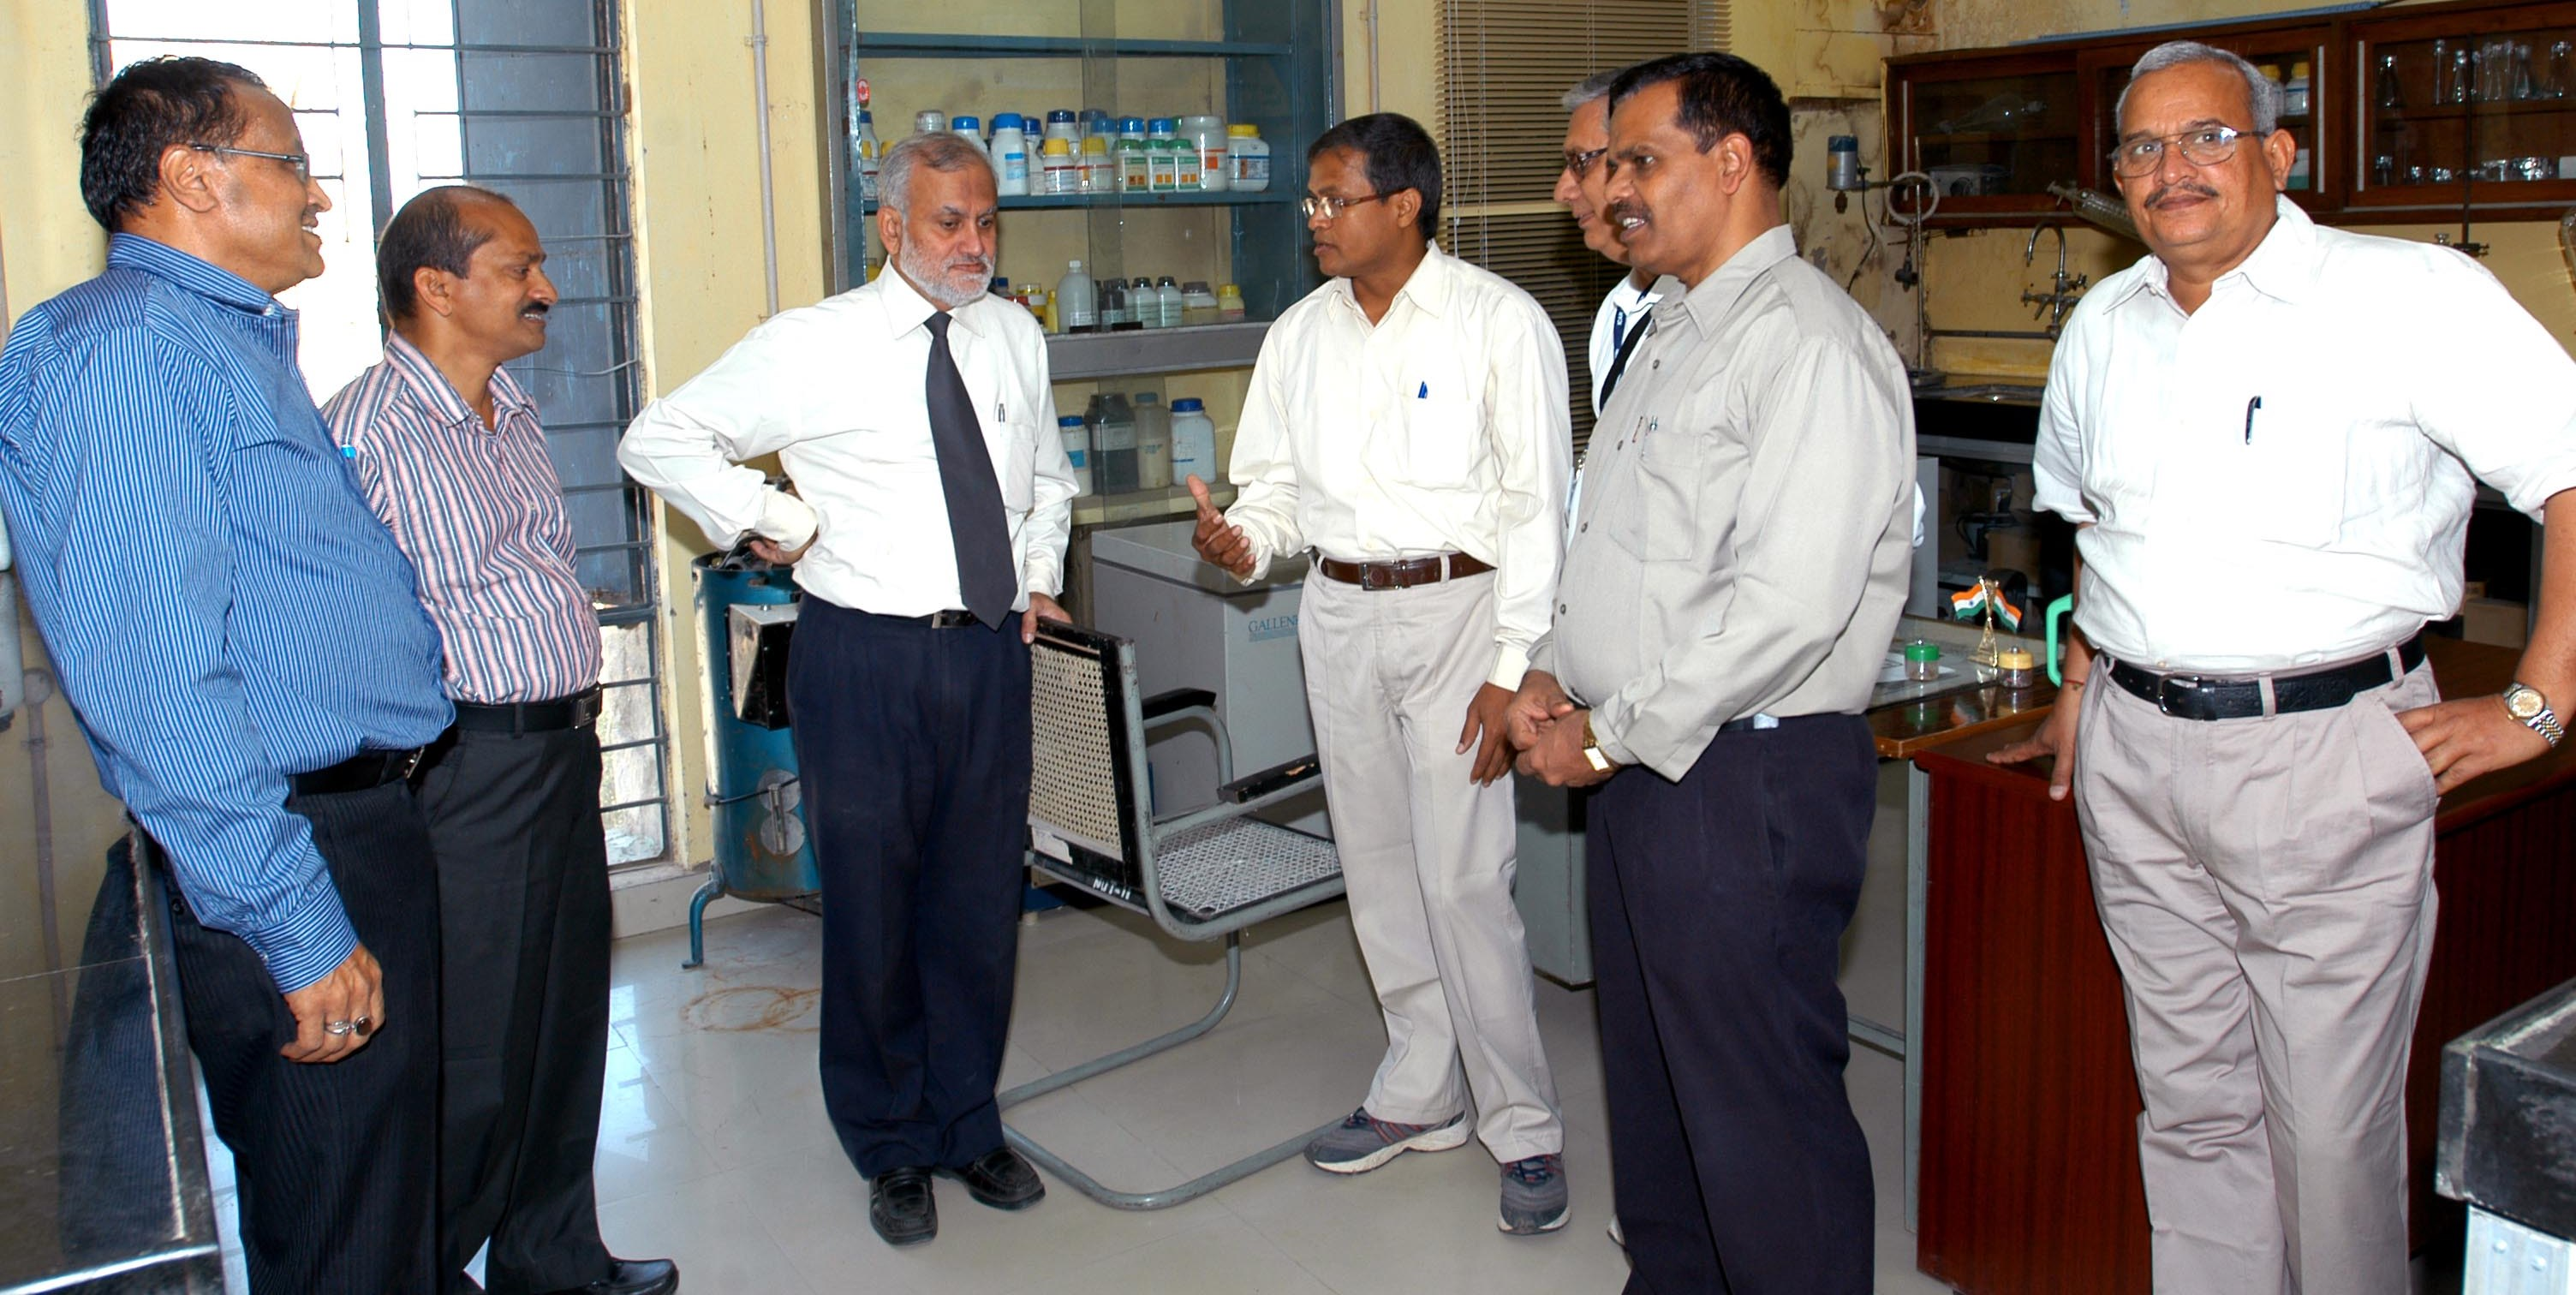 Discussion at Nutrition Lab